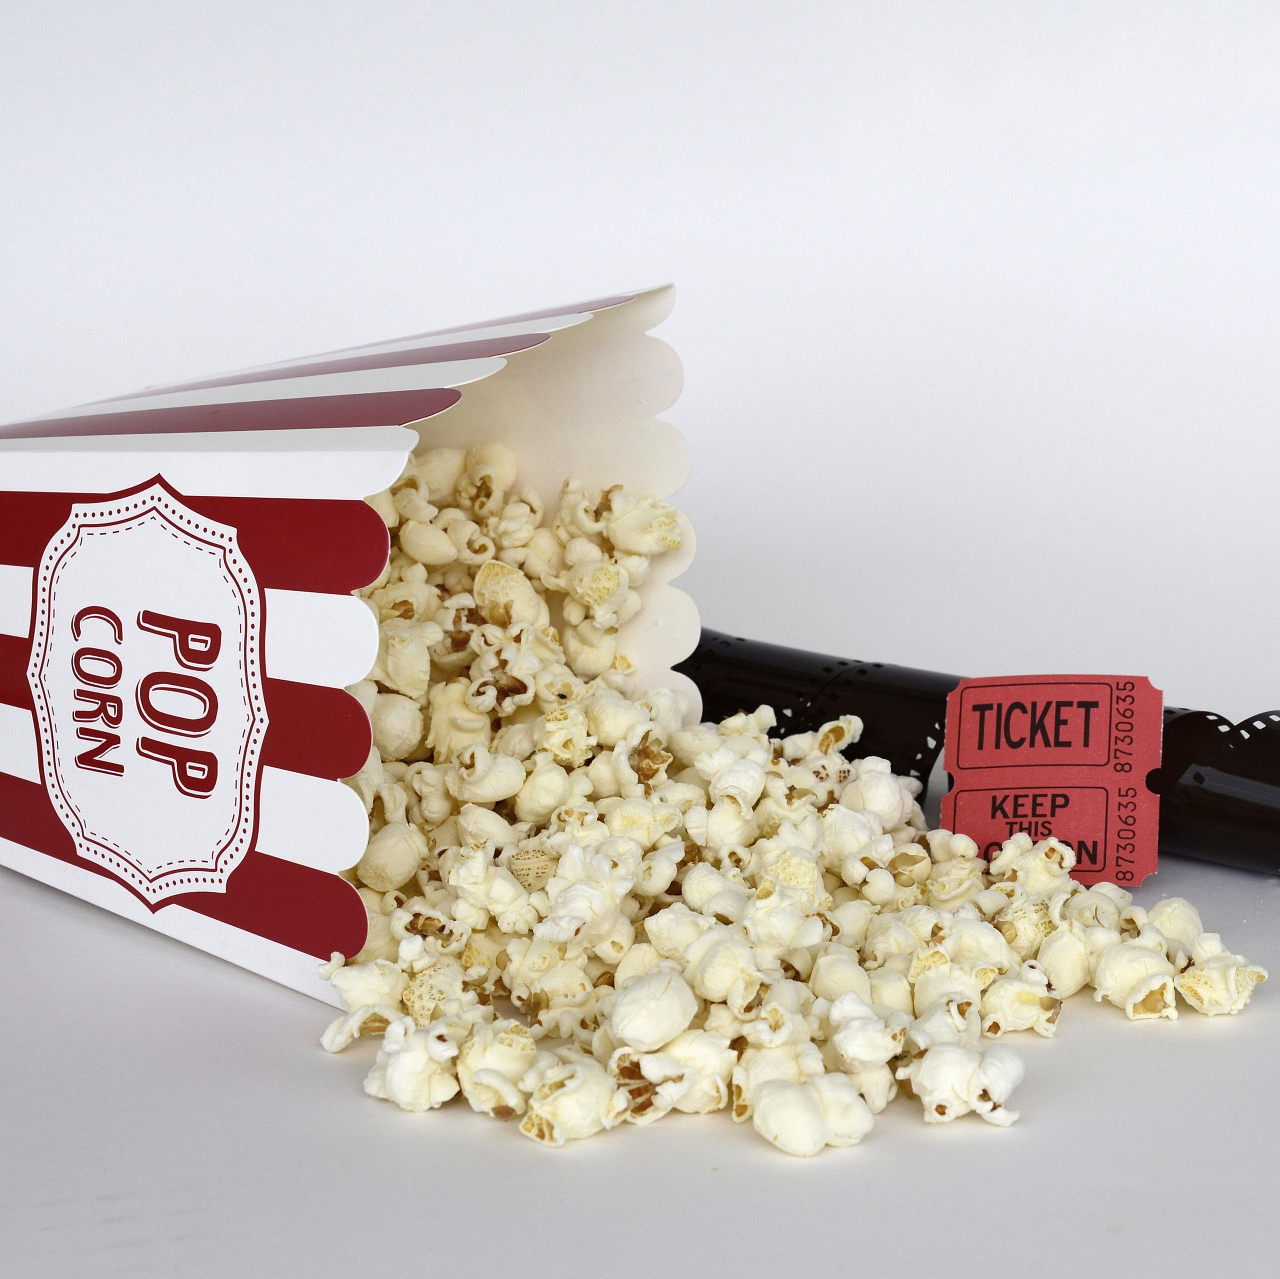 image of popcorn a theatre ticket and a film roll for movies reviews by thatbhaumikgirl